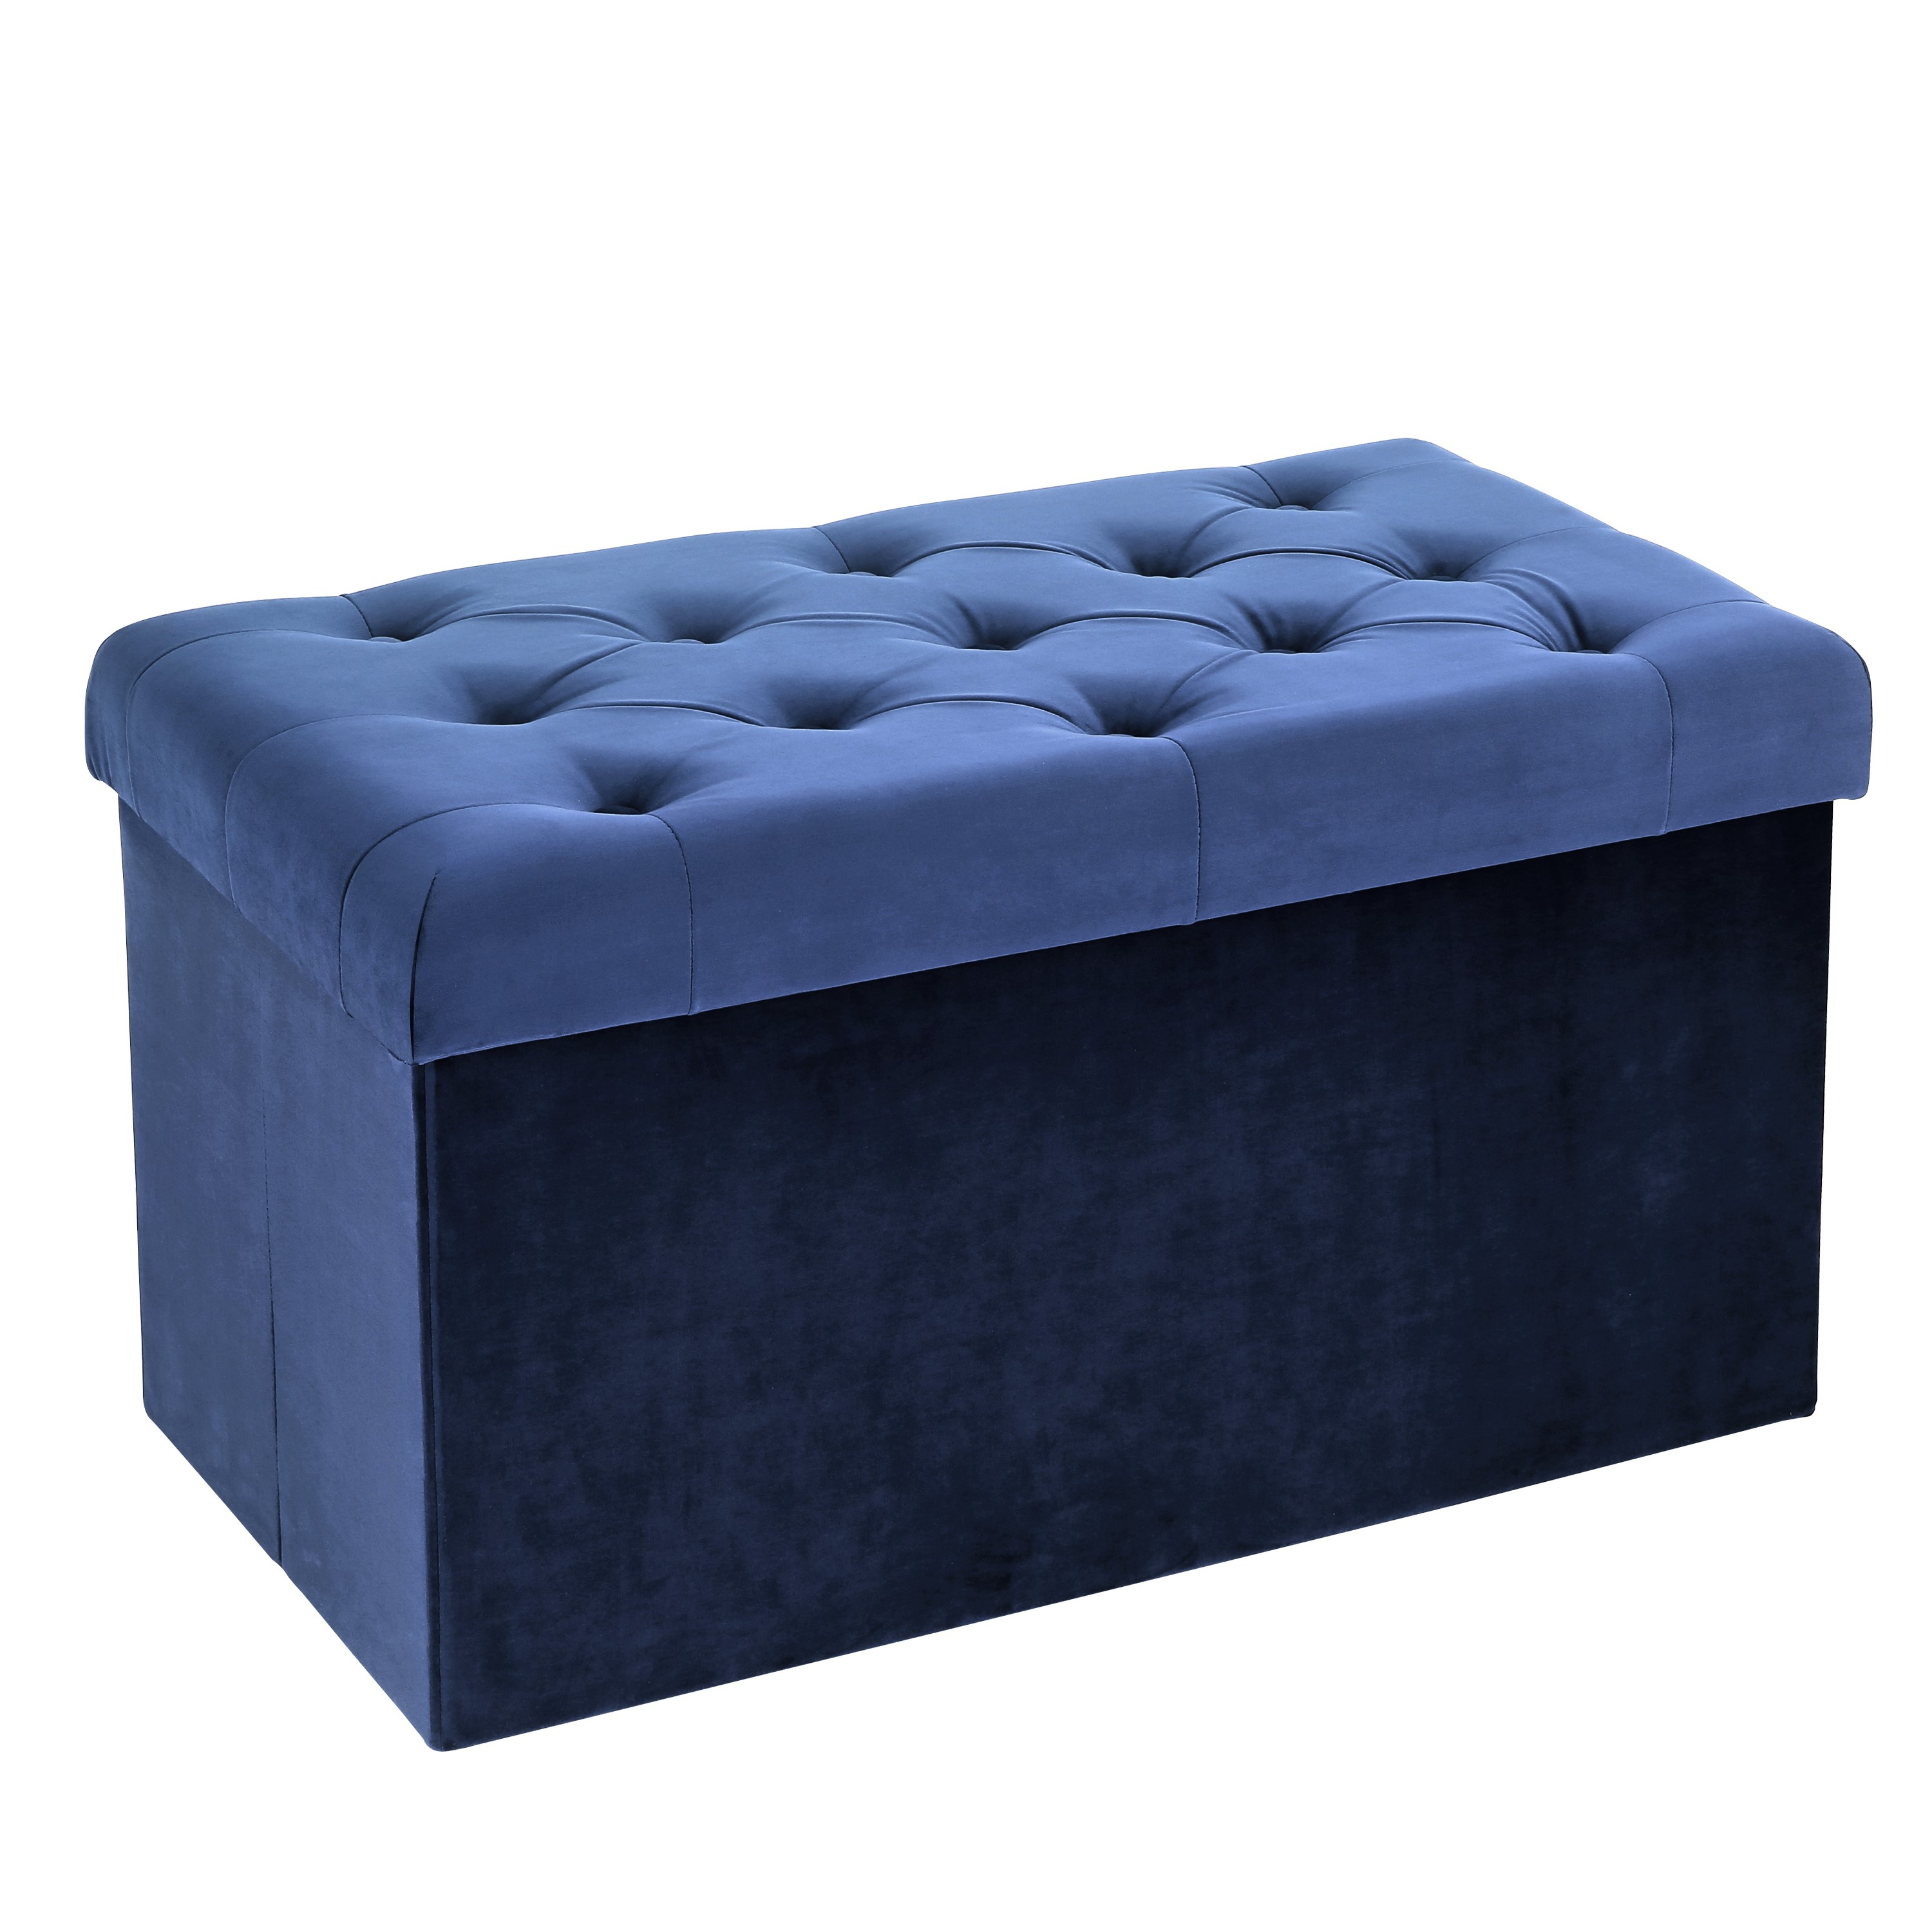 Poly and Bark Lauren Velvet Rectangular Storage Ottoman in Blue